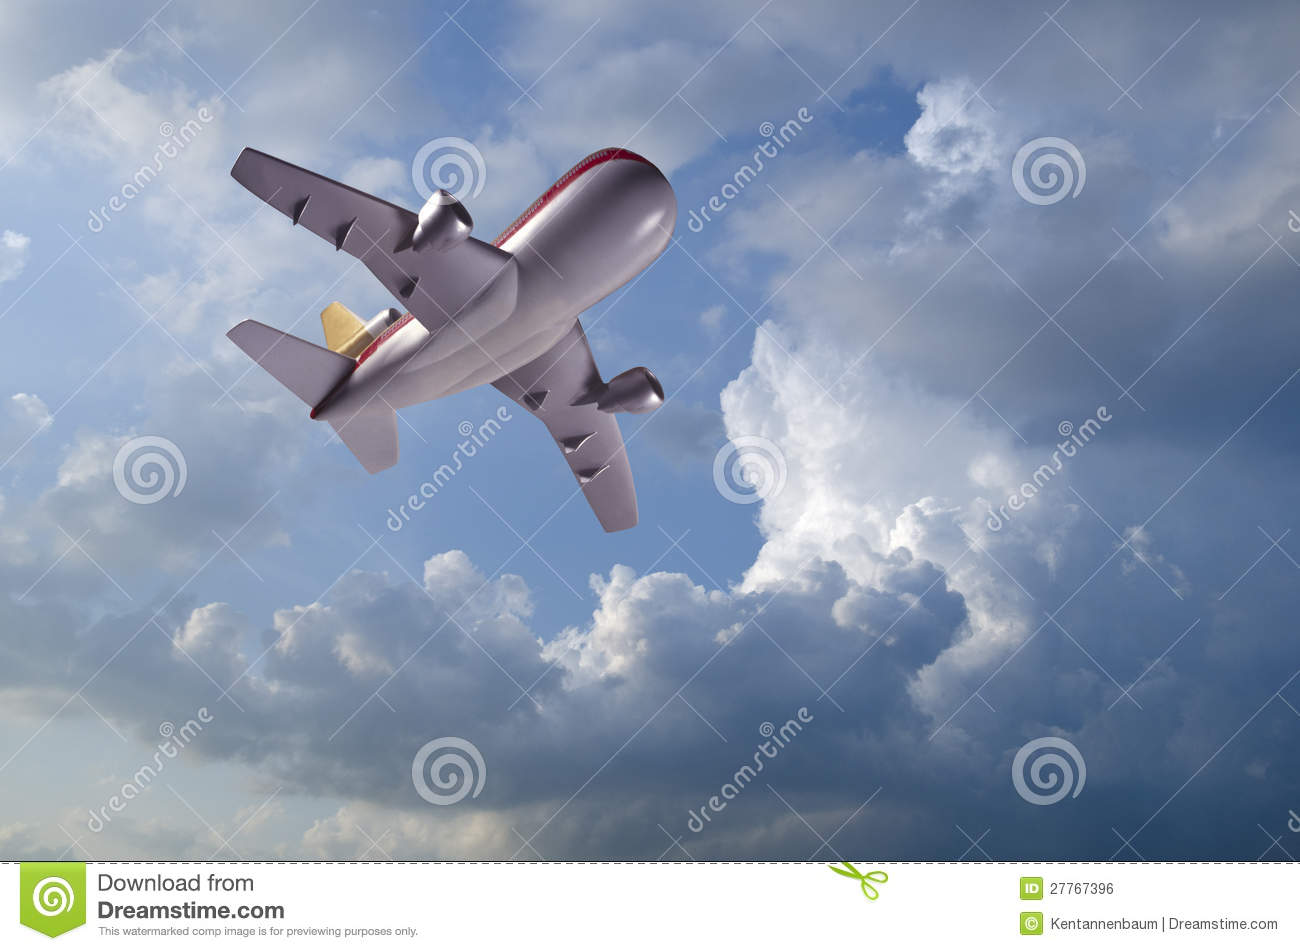 Model airplane flying in clouds